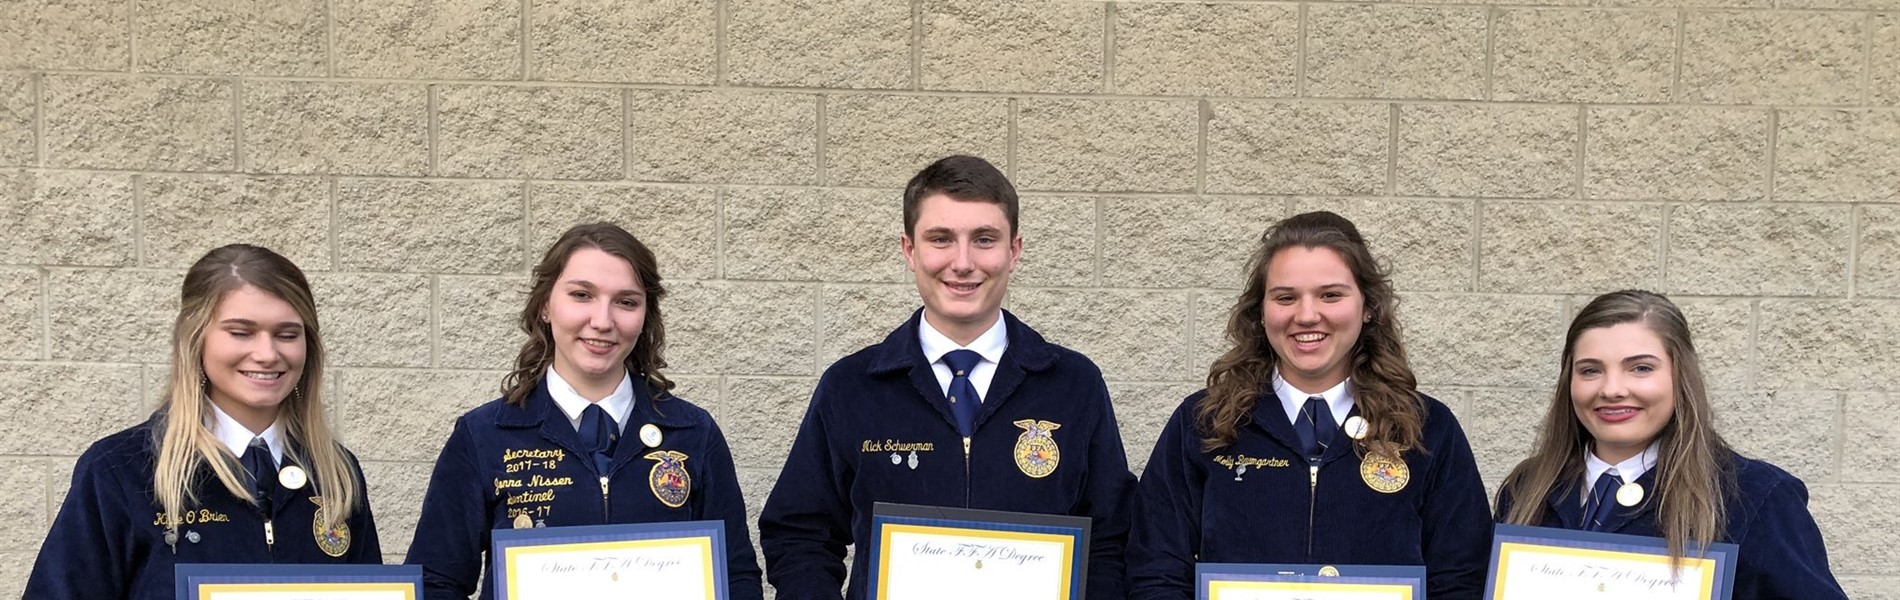 Congratulations to our 5 State FFA Degree recipients!